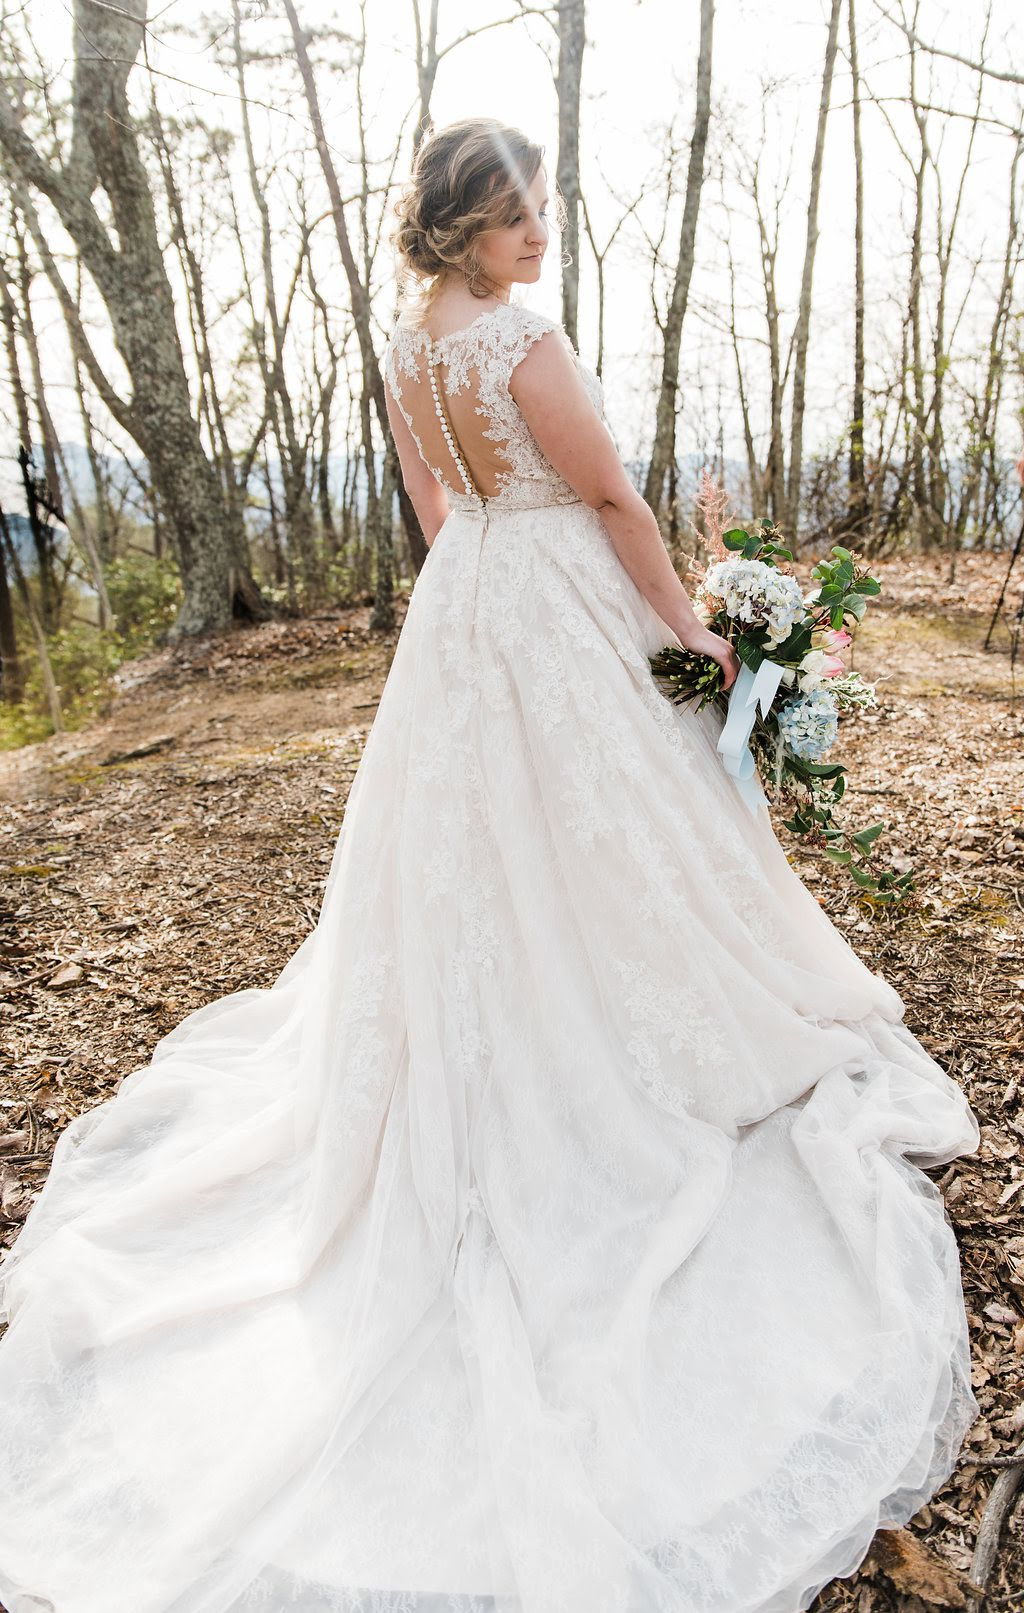 MountainStyledShoot_PearlEvents_57.jpg